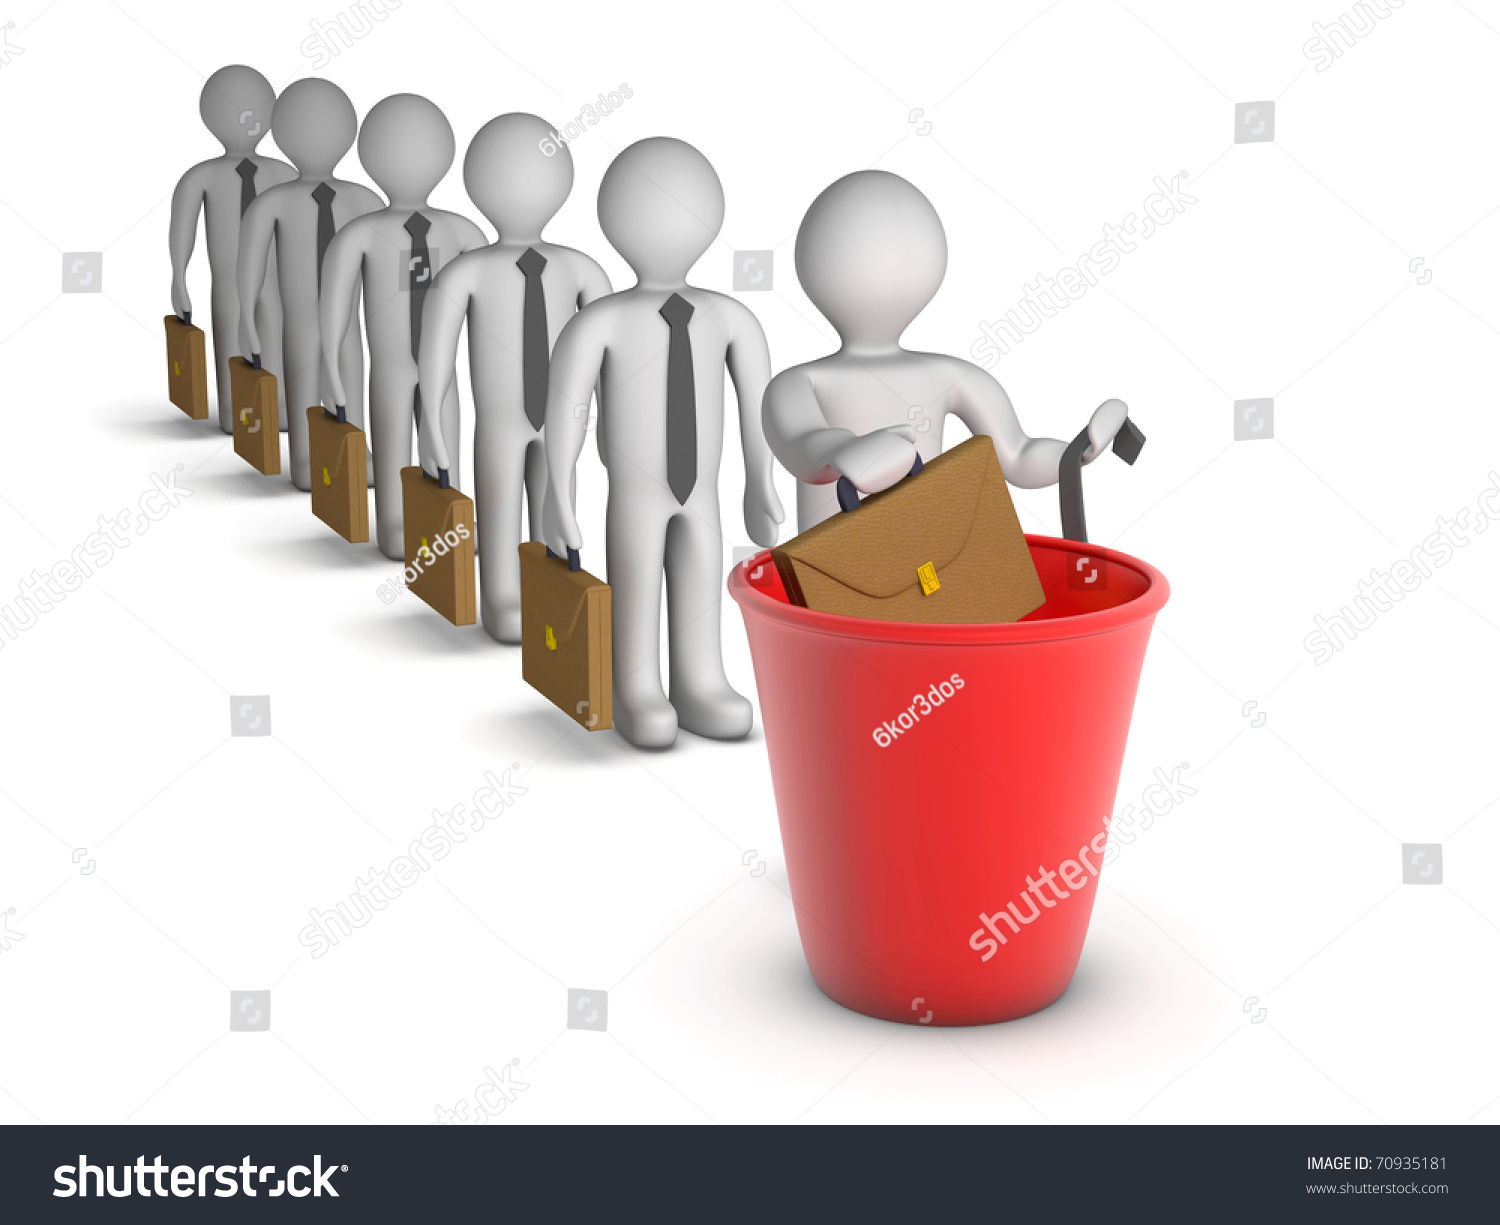 d people getting fired stock illustration shutterstock 3d people getting fired